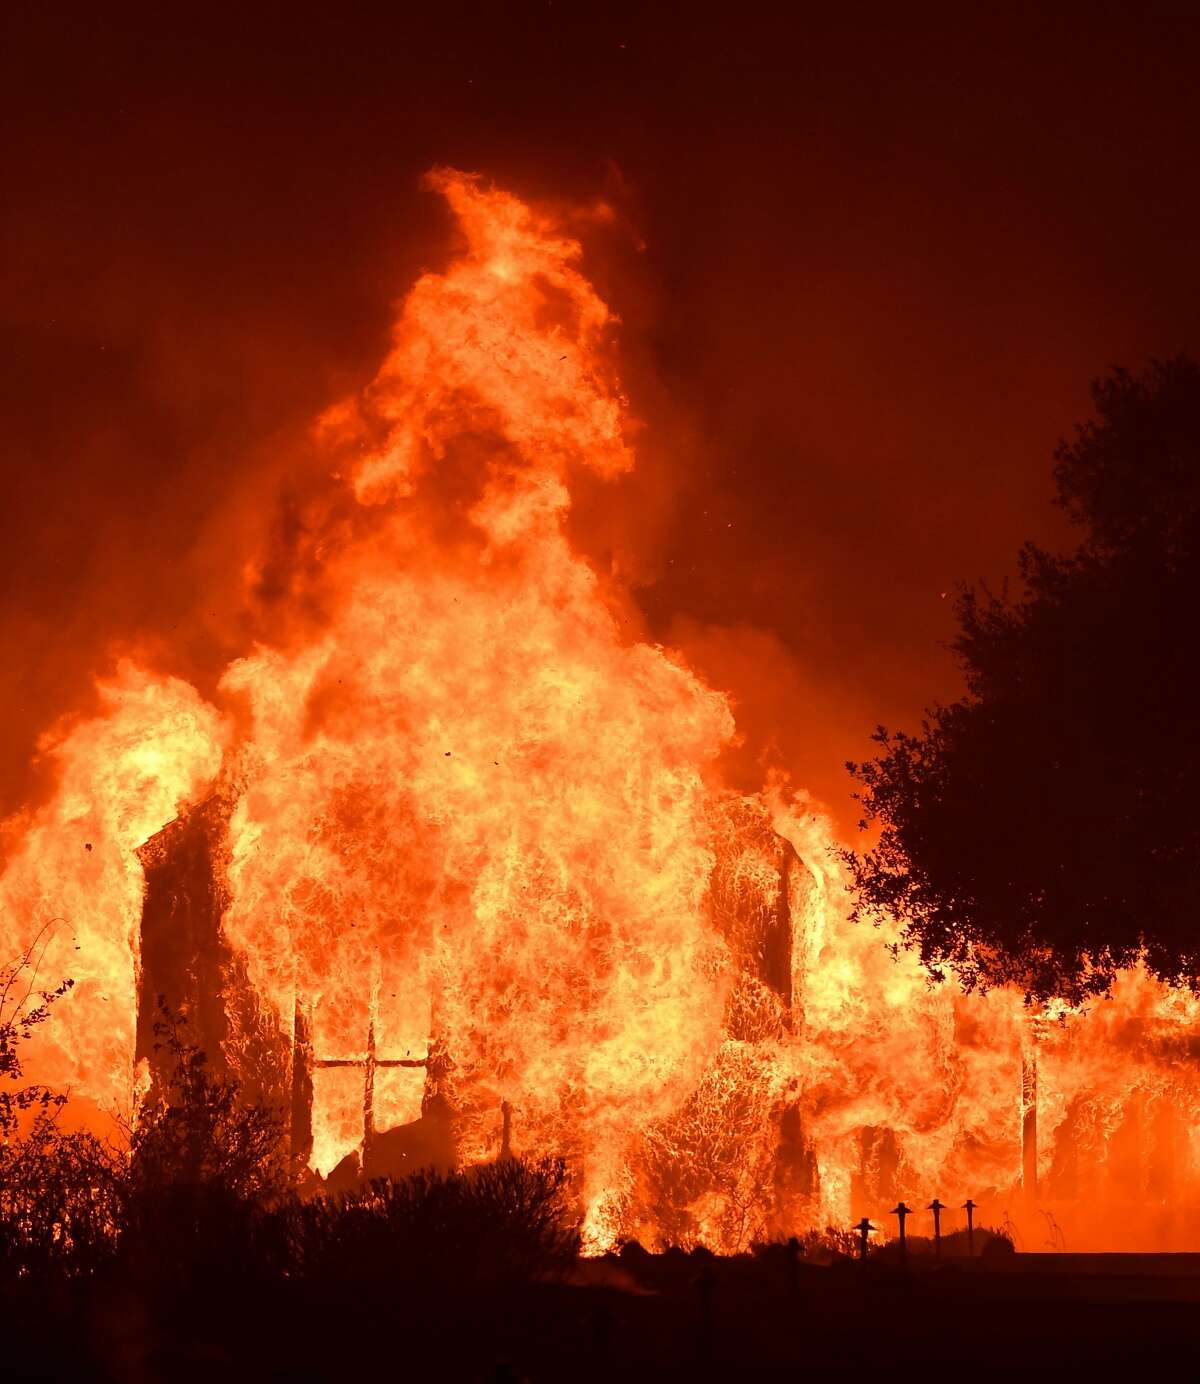 The main building at Paras Vinyards burns in the Mount Veeder area of Napa in California on October 10, 2017. Firefighters battled wildfires in California's wine region on Tuesday as the death toll rose to 15 and thousands were left homeless in neighborhoods reduced to ashes. / AFP PHOTO / JOSH EDELSONJOSH EDELSON/AFP/Getty Images